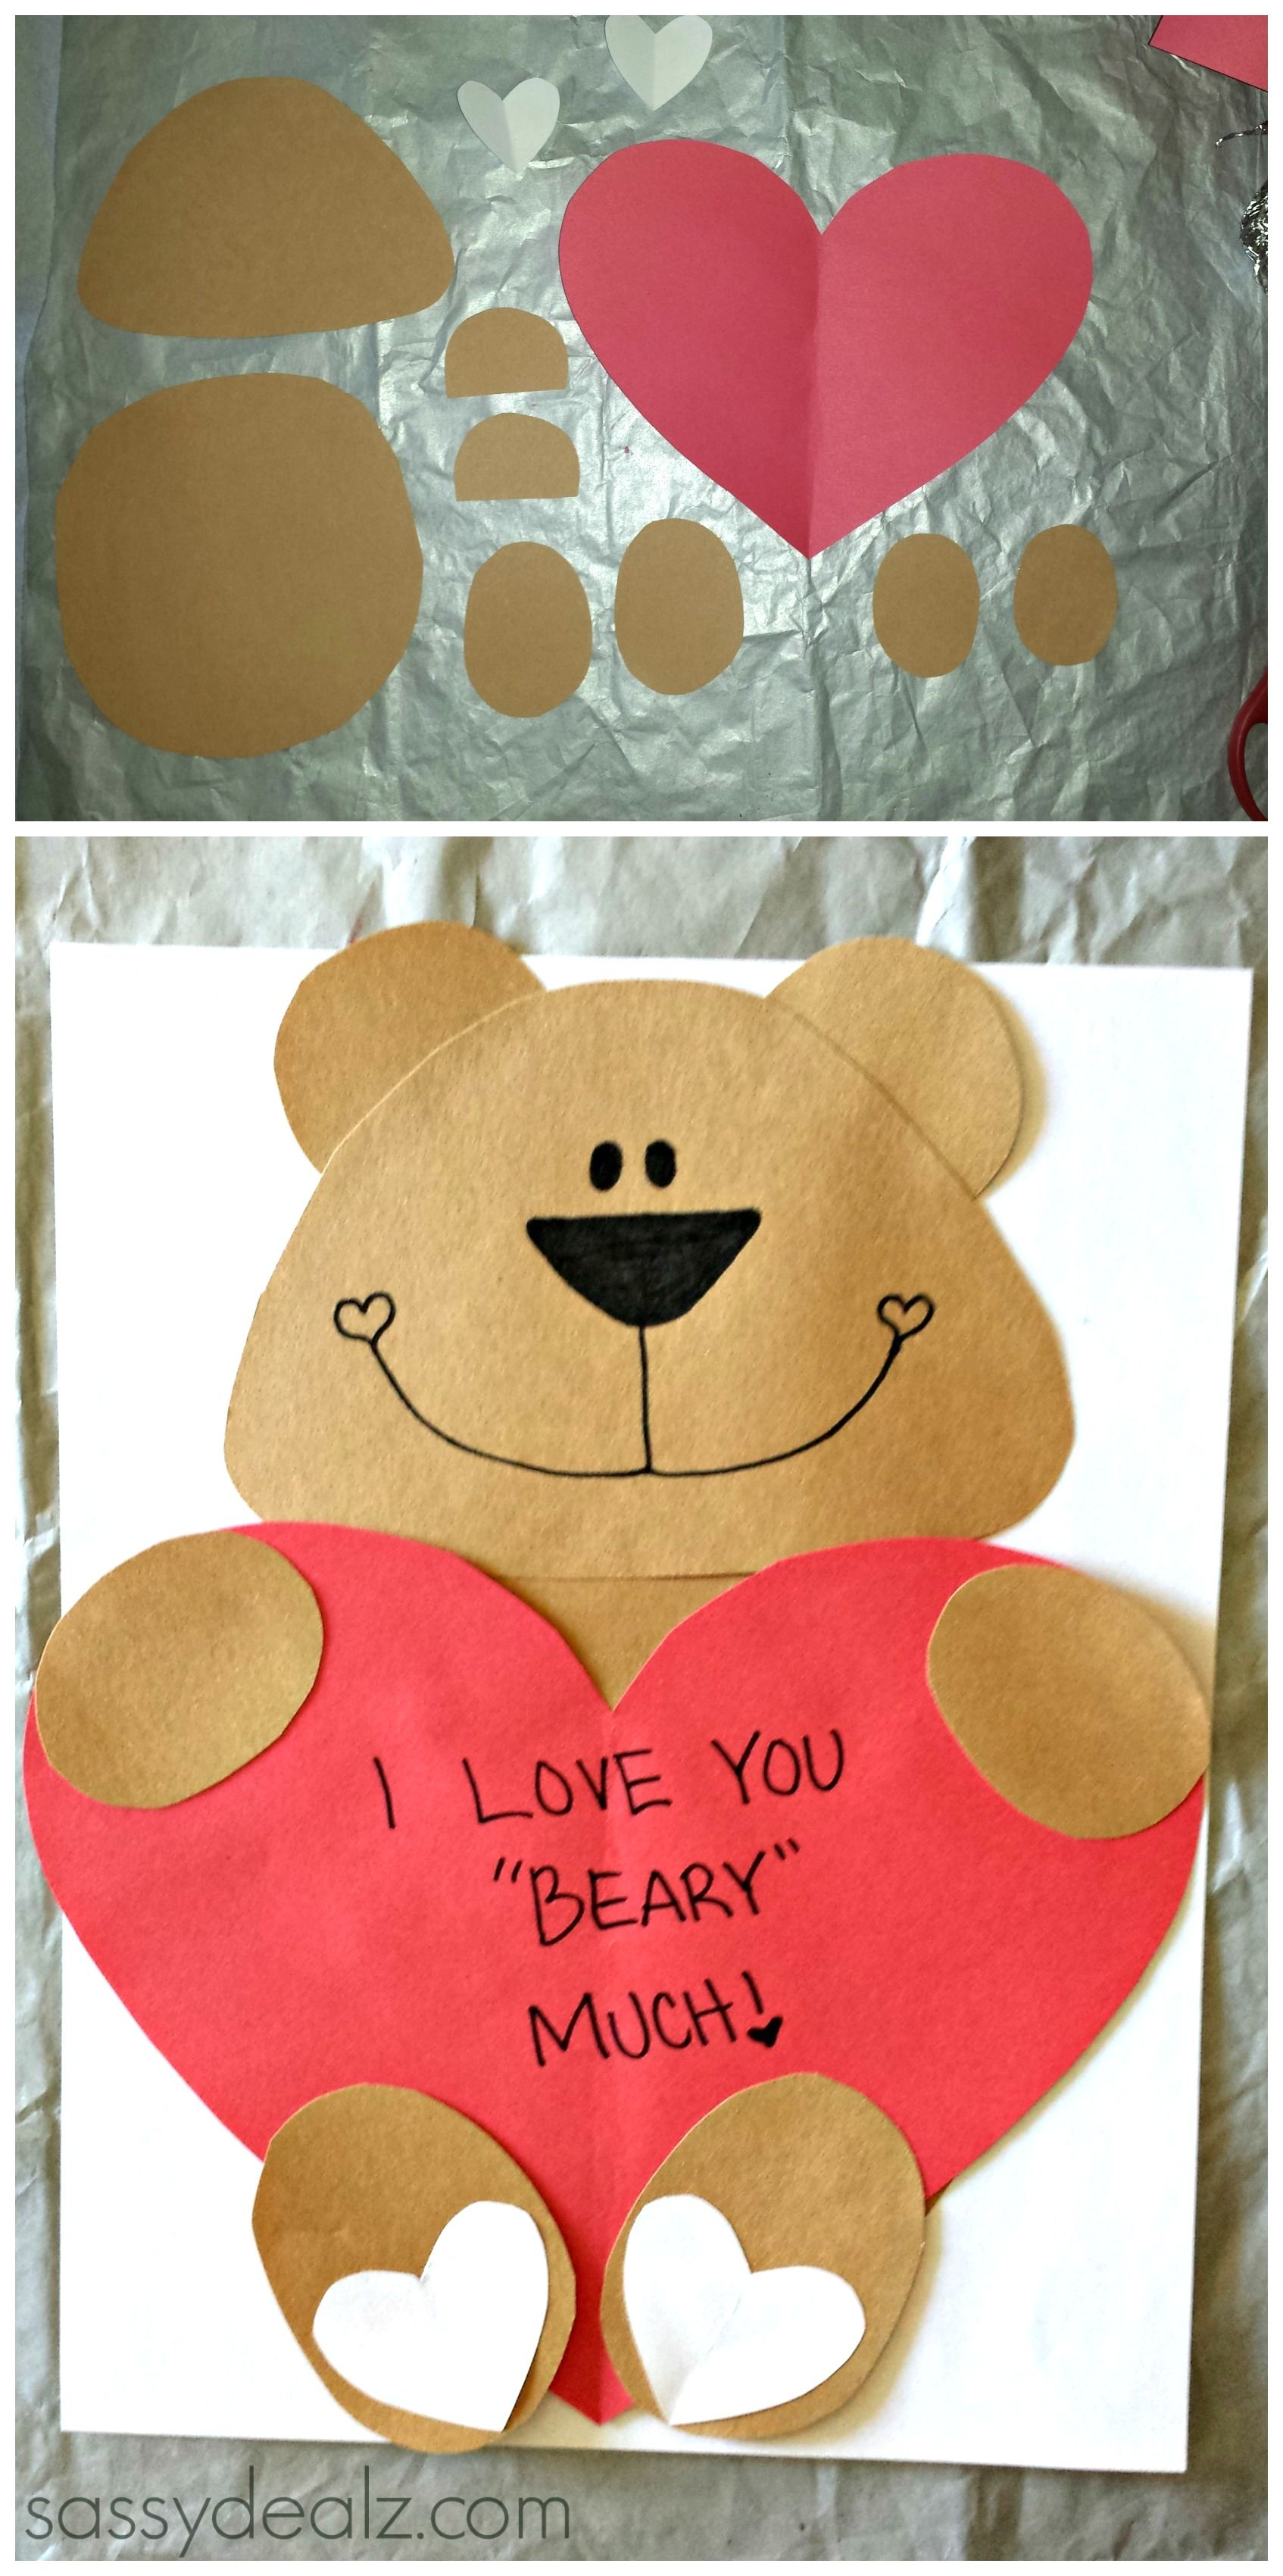 Diy bear valentine 39 s day craft for kids cute valentines for Valentines day cute ideas